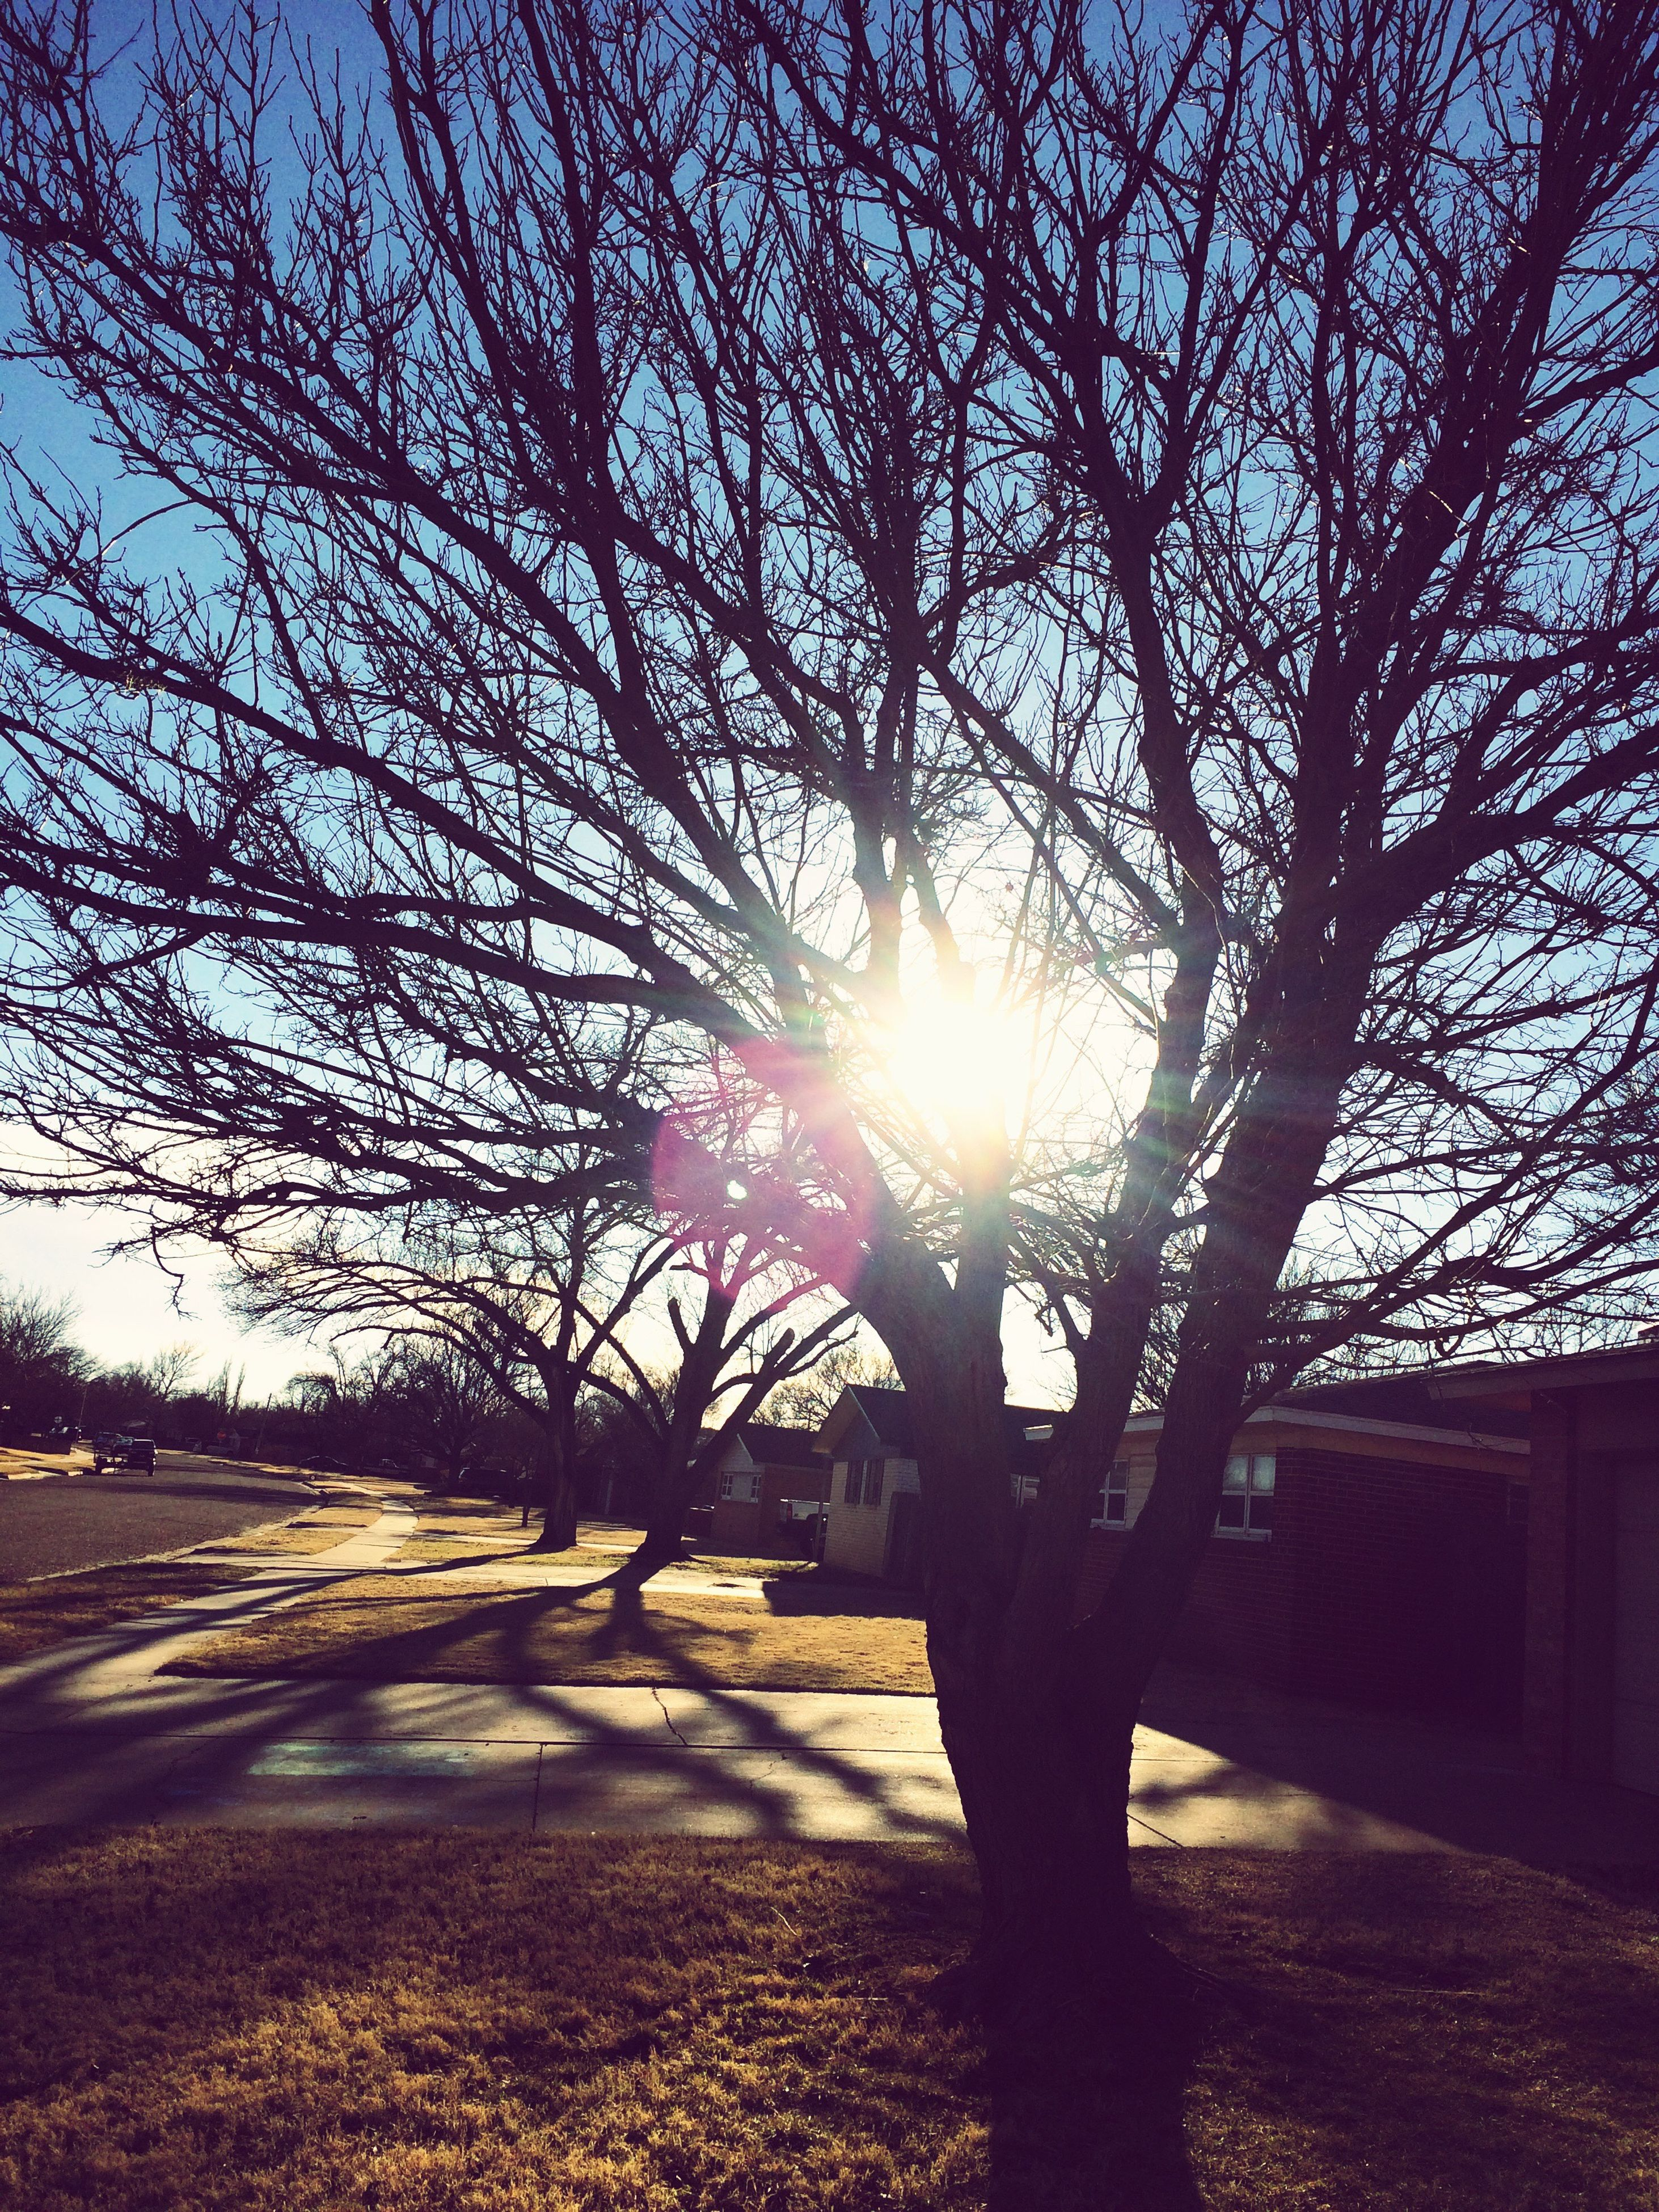 sunset, sunlight, tree, sun, sky, lens flare, nature, sunbeam, no people, outdoors, beauty in nature, day, close-up